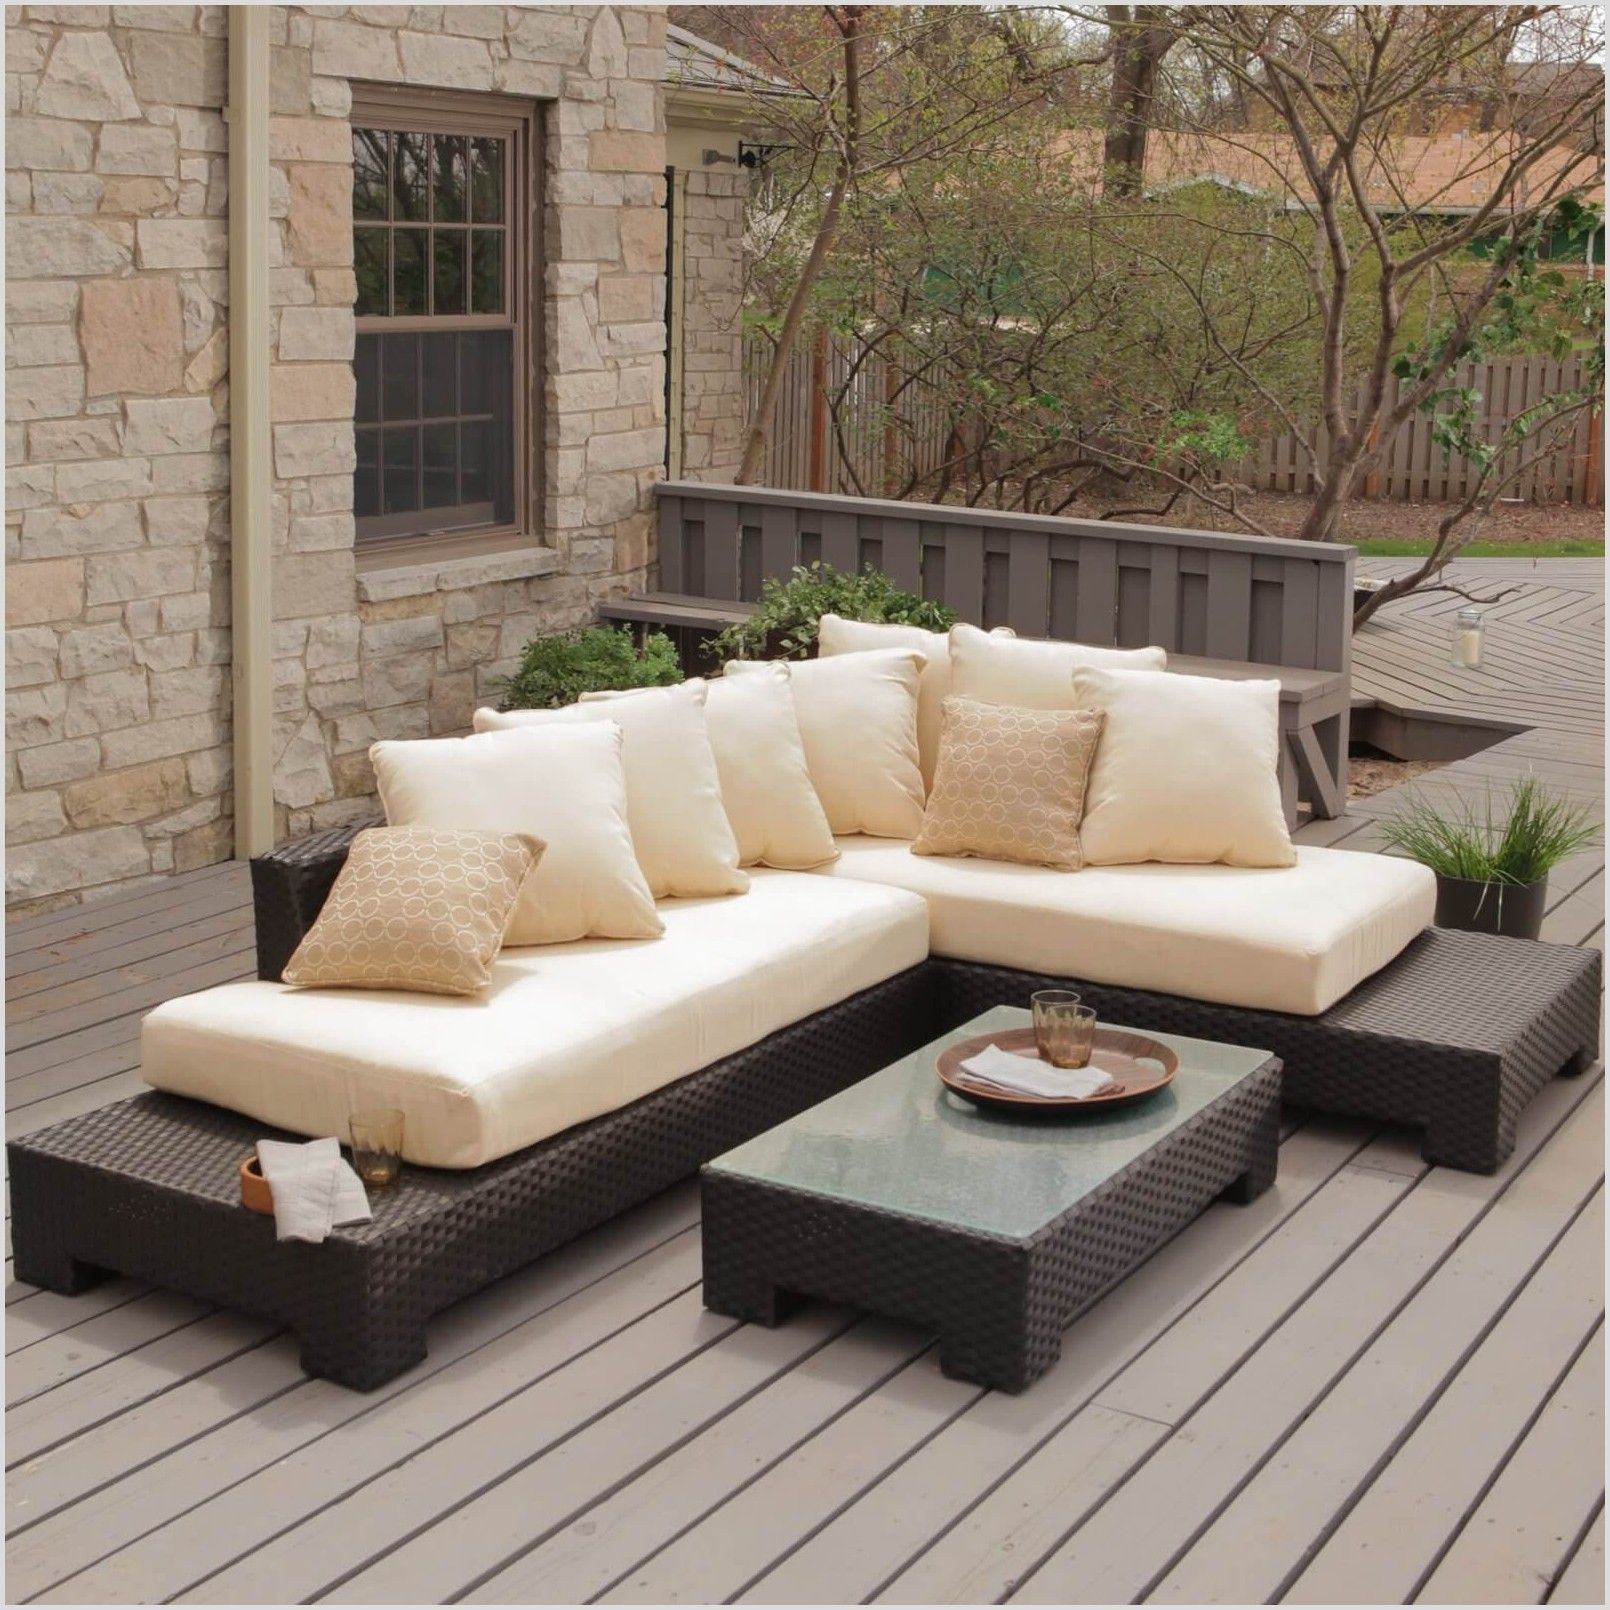 39 Reference Of Couch L Shaped Outdoor In 2020 Modern Patio Furniture Modern Outdoor Furniture Comfortable Patio Furniture